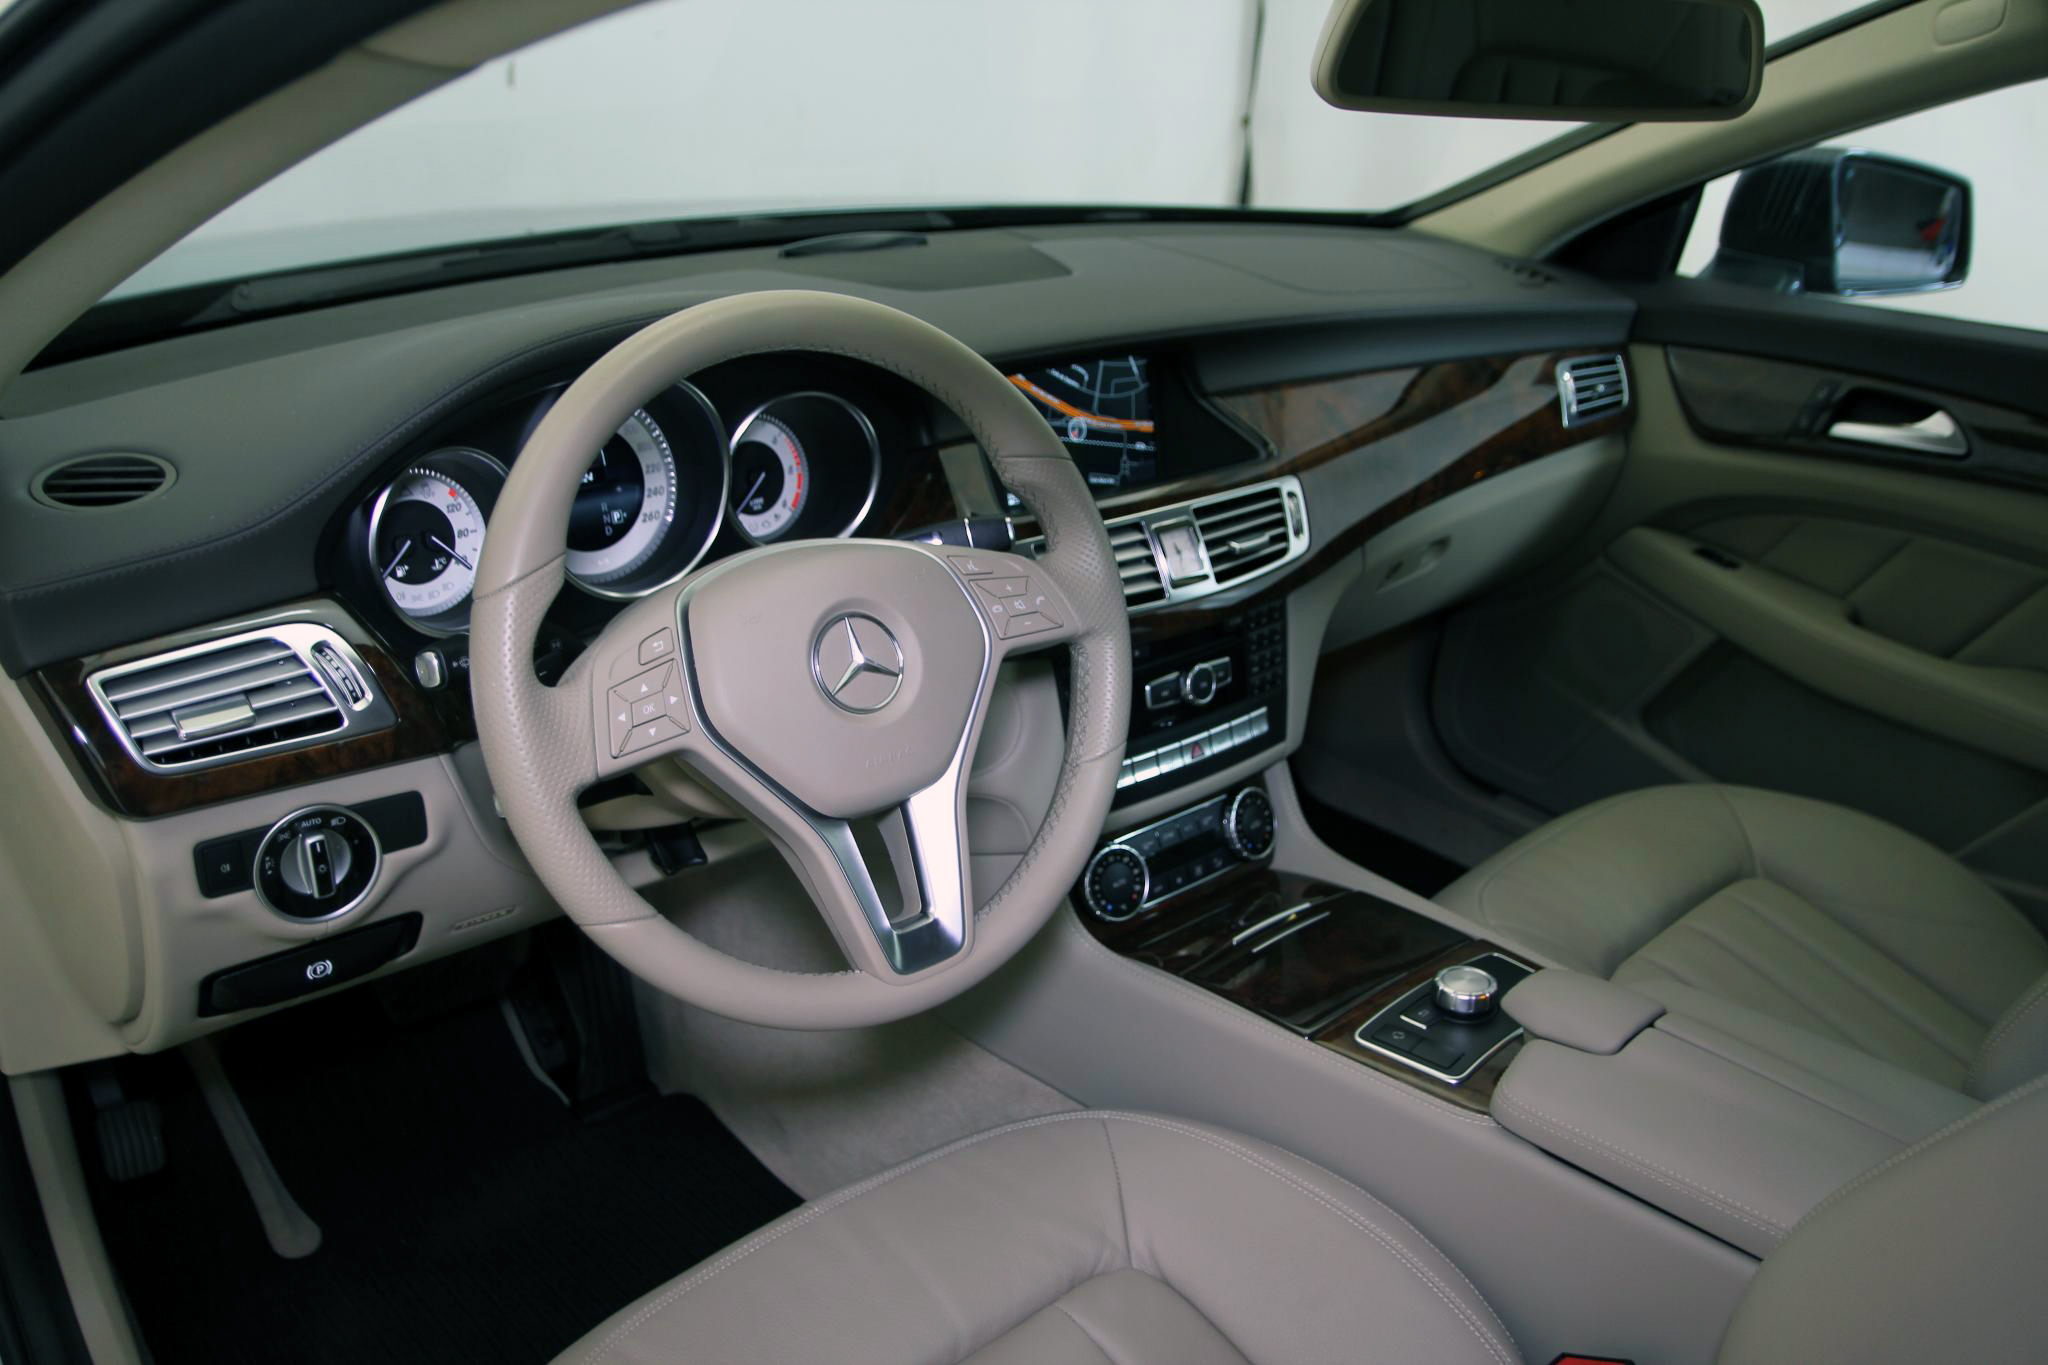 Mercedes-Benz Clase CLS CLS SHOOTING BRAKE 350 CDI AUTO imagen 21